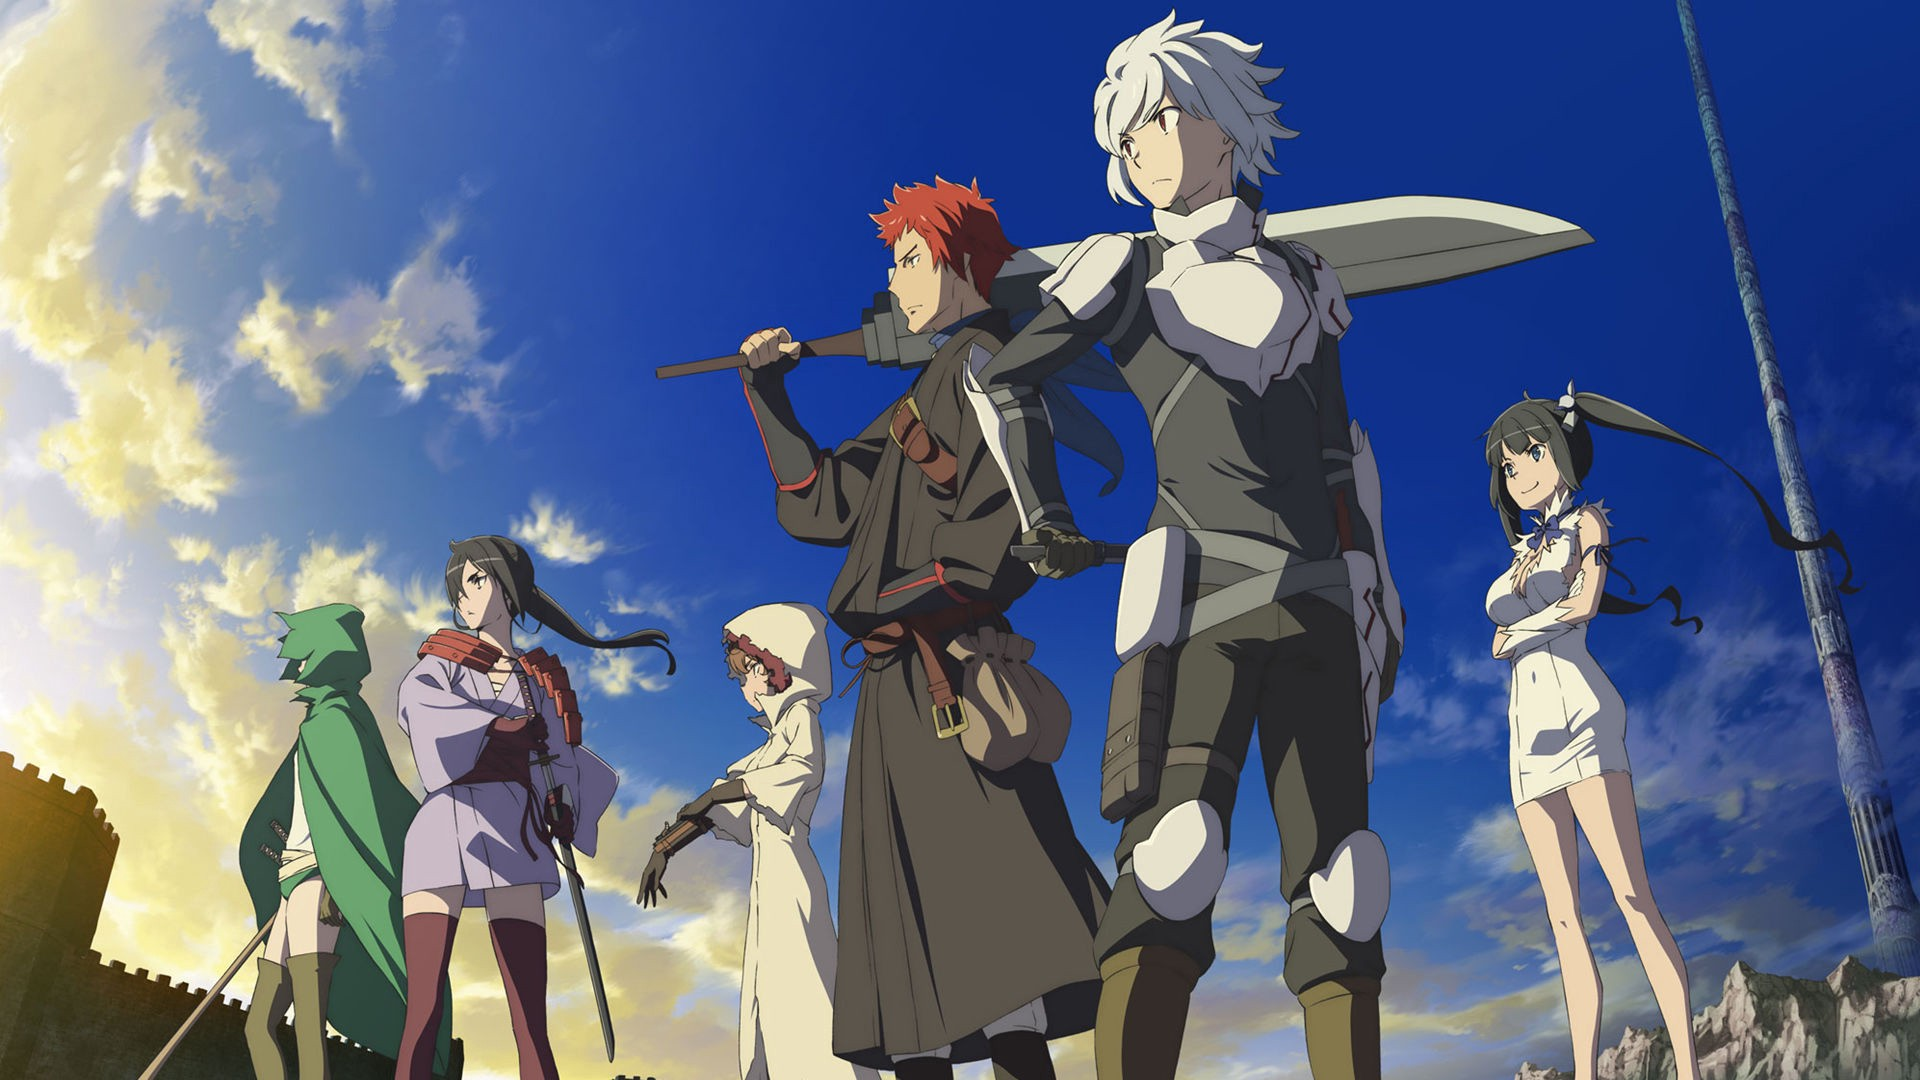 DanMachi S3 — Episode 1 [ENGSUB] Is It Wrong to Try to Pick Up Girls in a Dungeon? S3 | by Vjeran Marušić | DanMachi S3 Premiere 2020 | Oct, 2020 | Medium